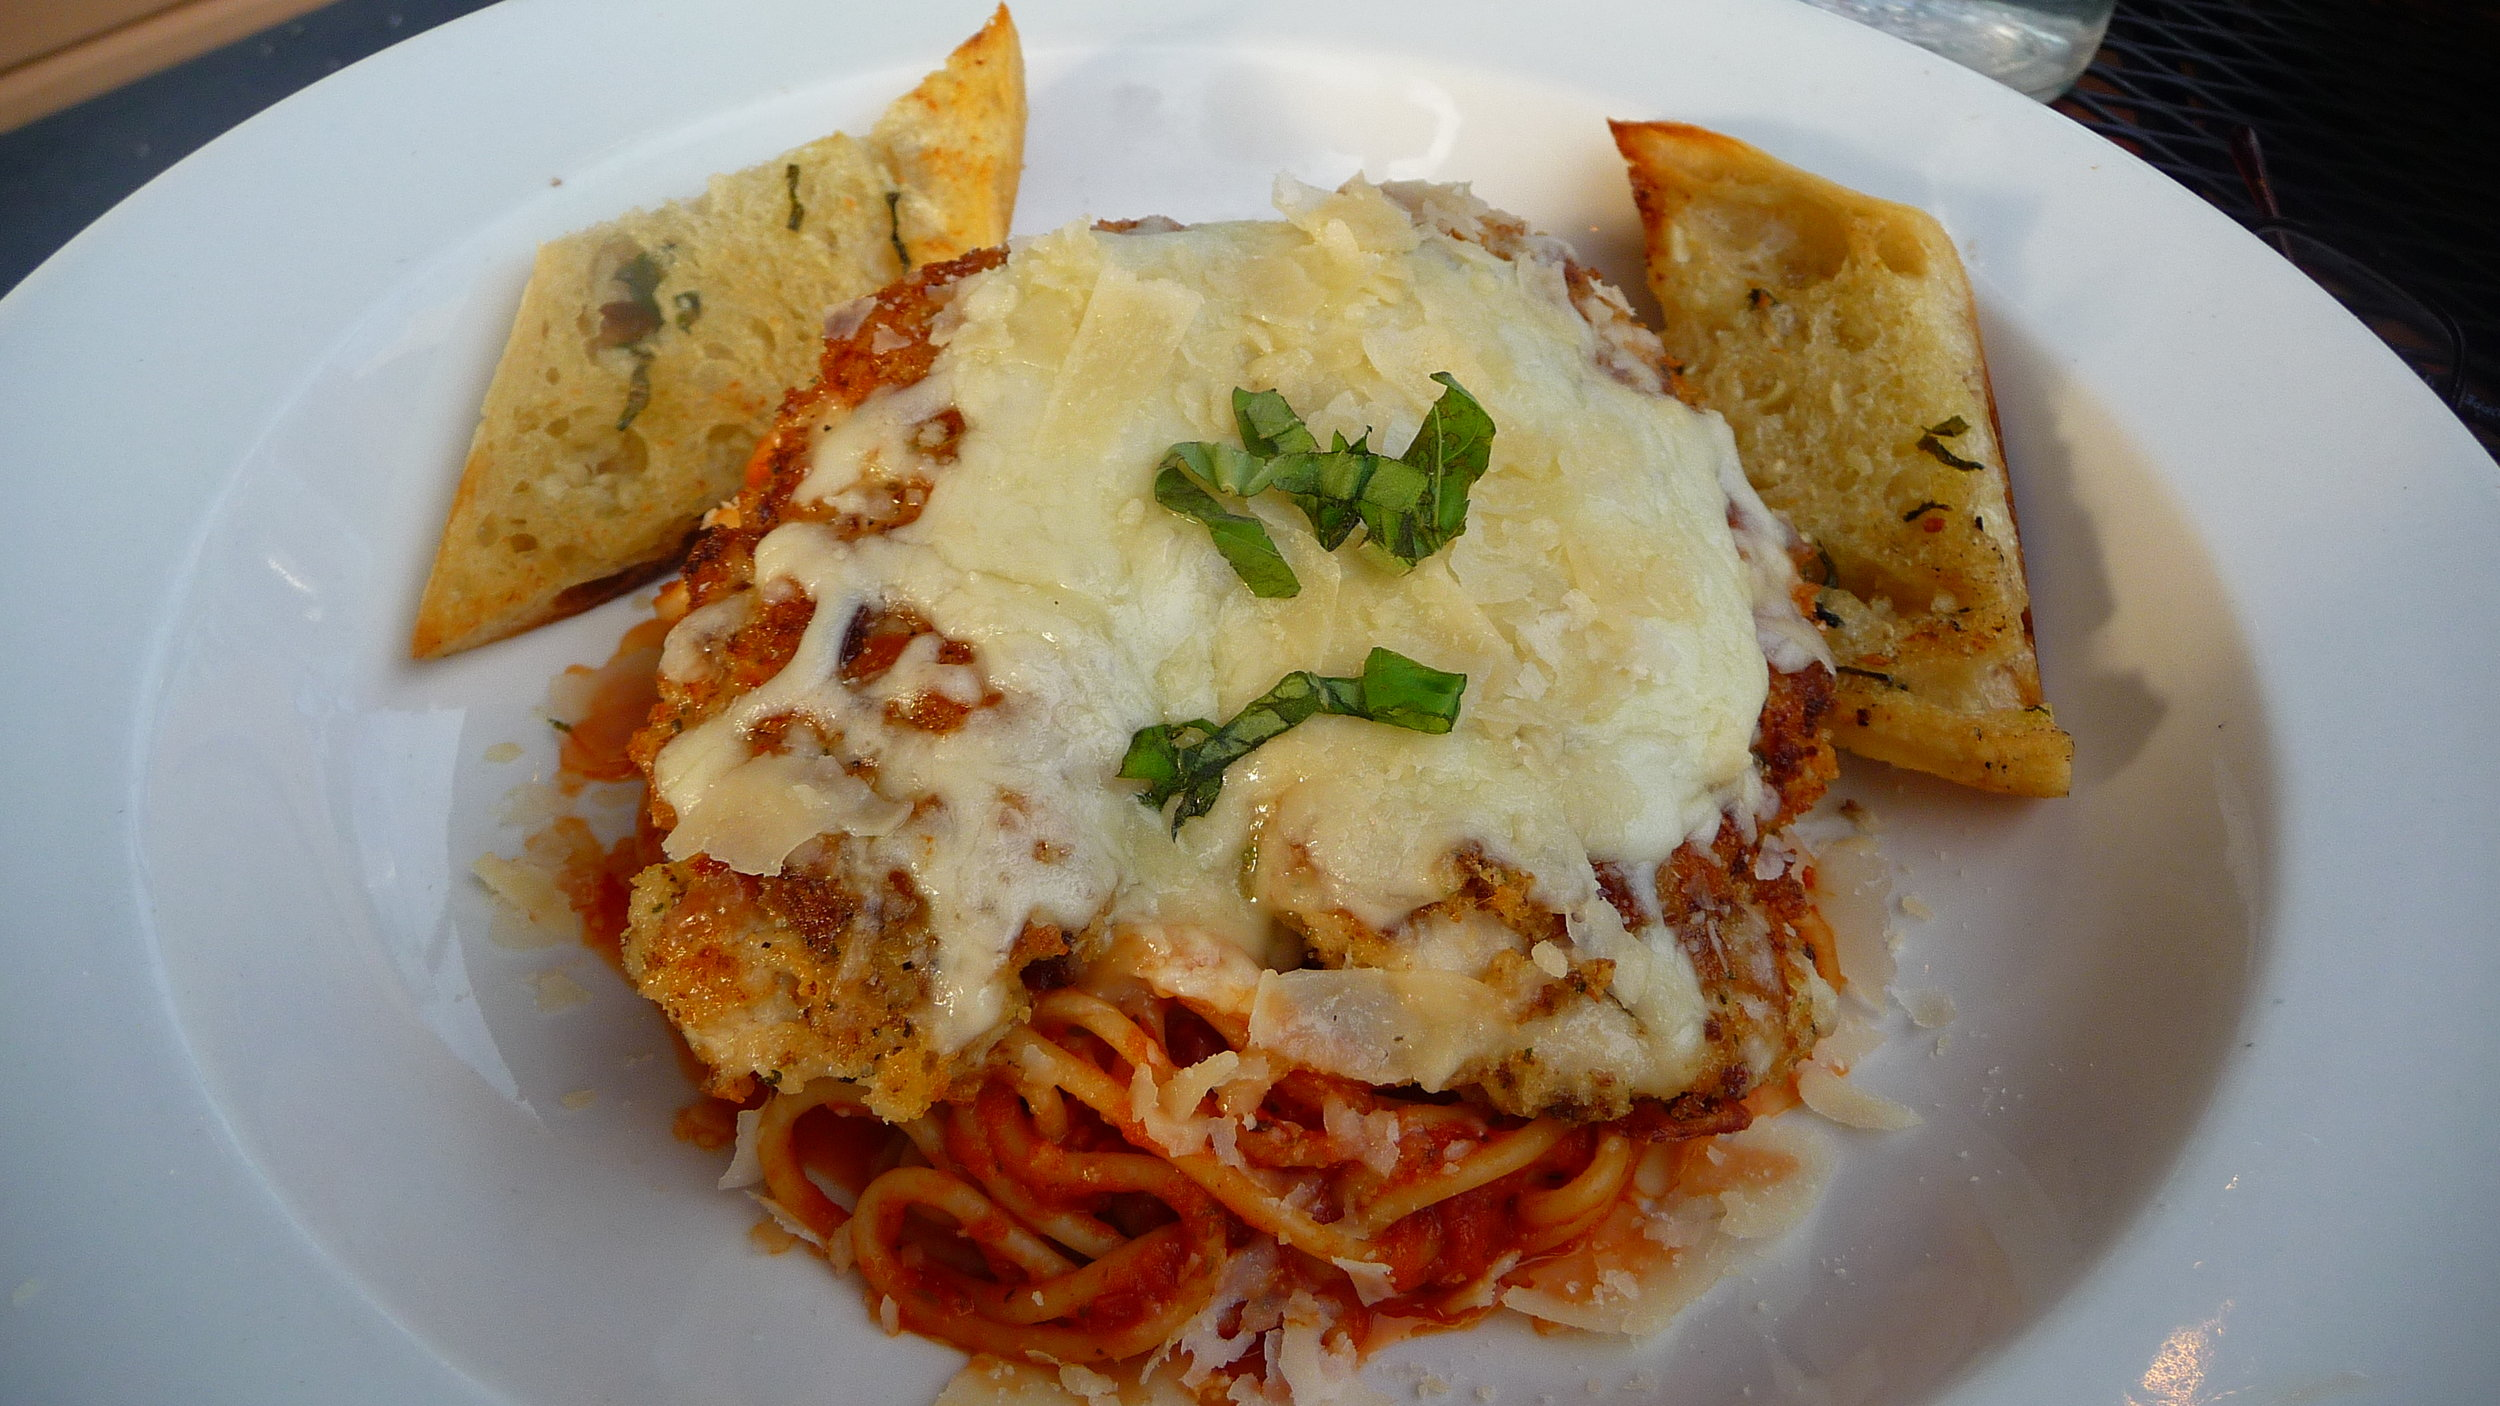 The marinara sauce of his Chicken Parmesan was fresh. The chicken had a range-free taste (don't know if it actually was) and the bed of pasta it was on only added to the frenzy he was in.